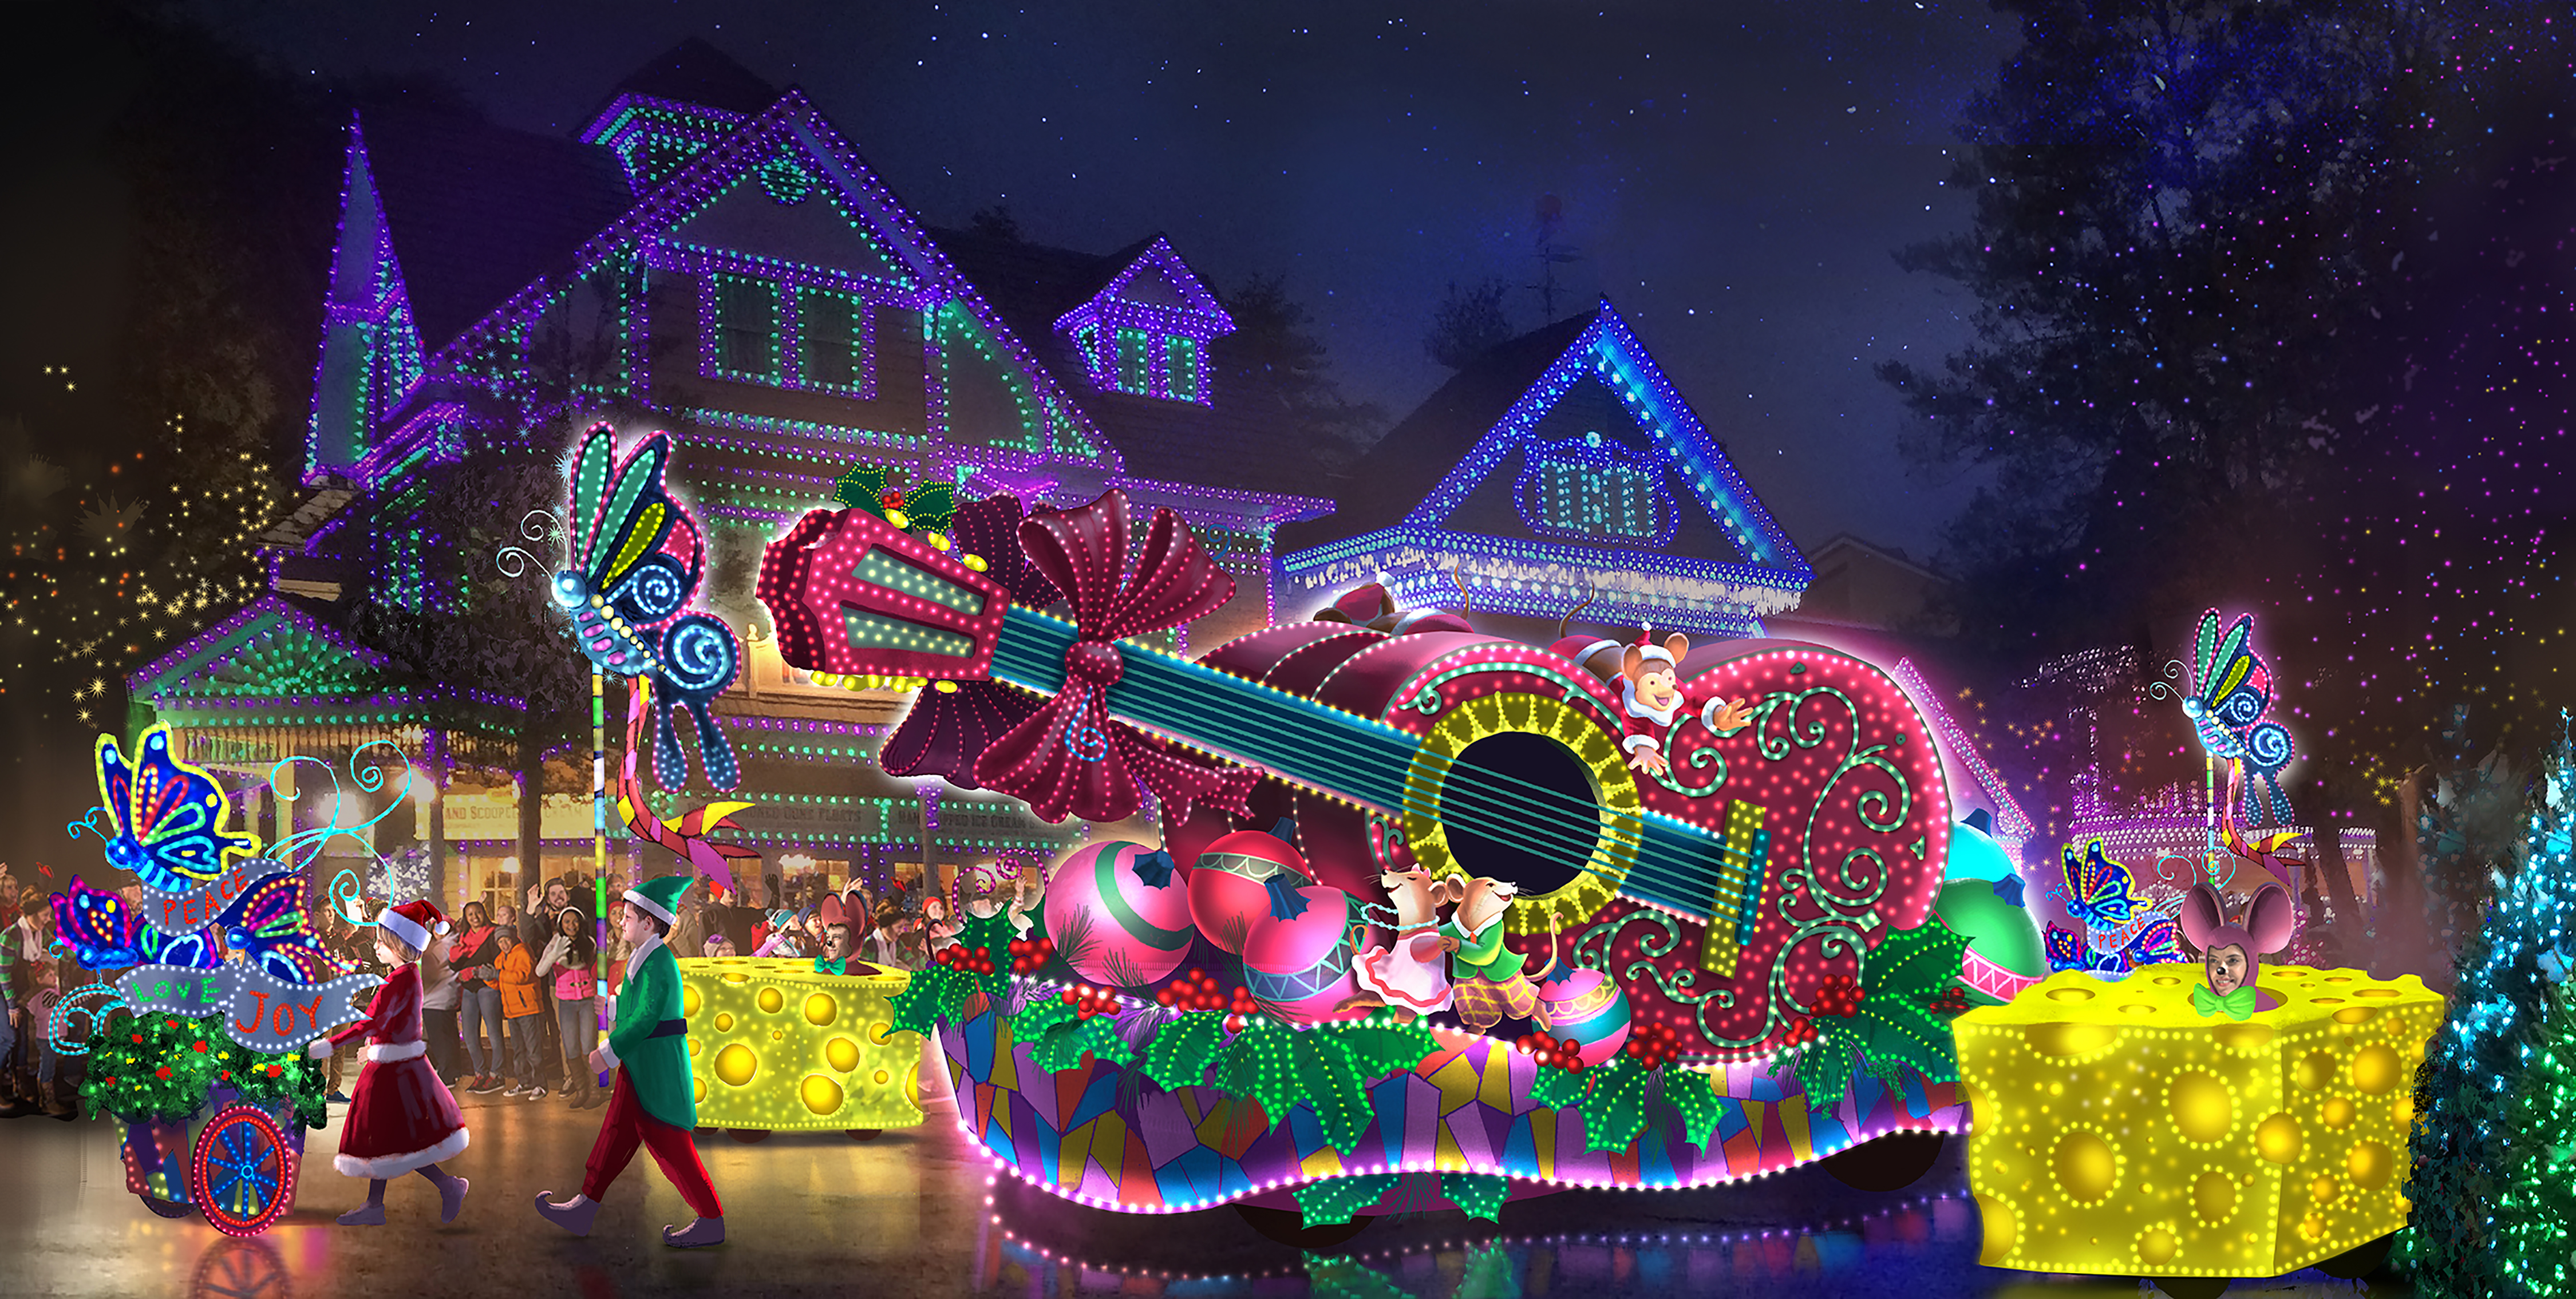 Dollywood announces $2.5 million Parade of Many Colors